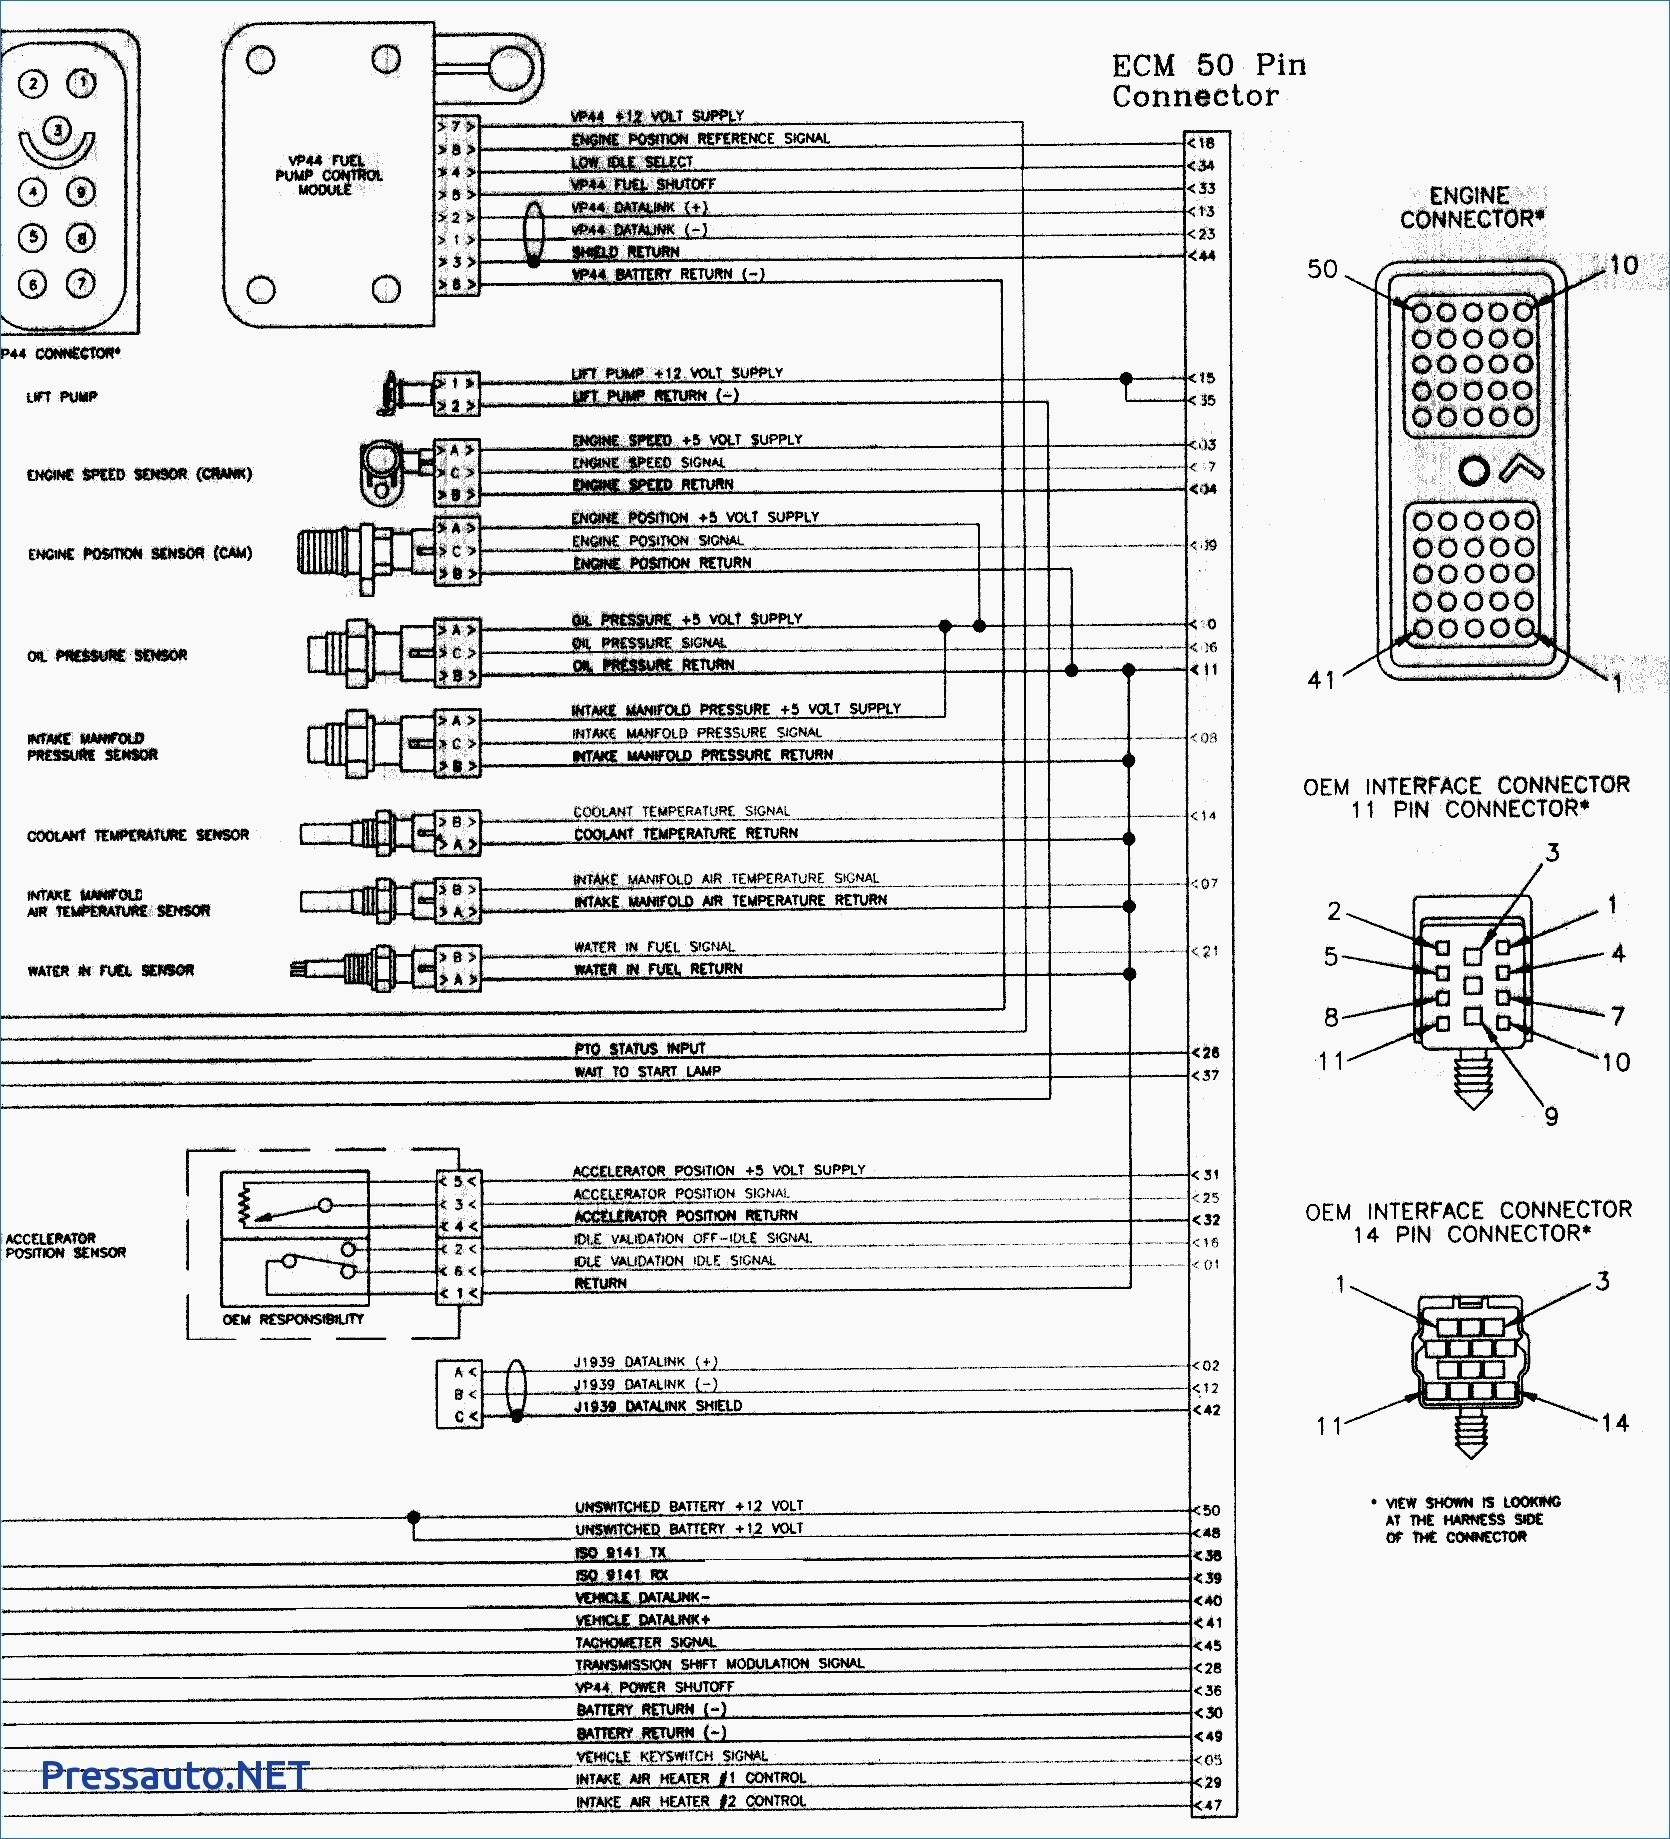 2001 dodge ram wiring diagram 2001dodgeram